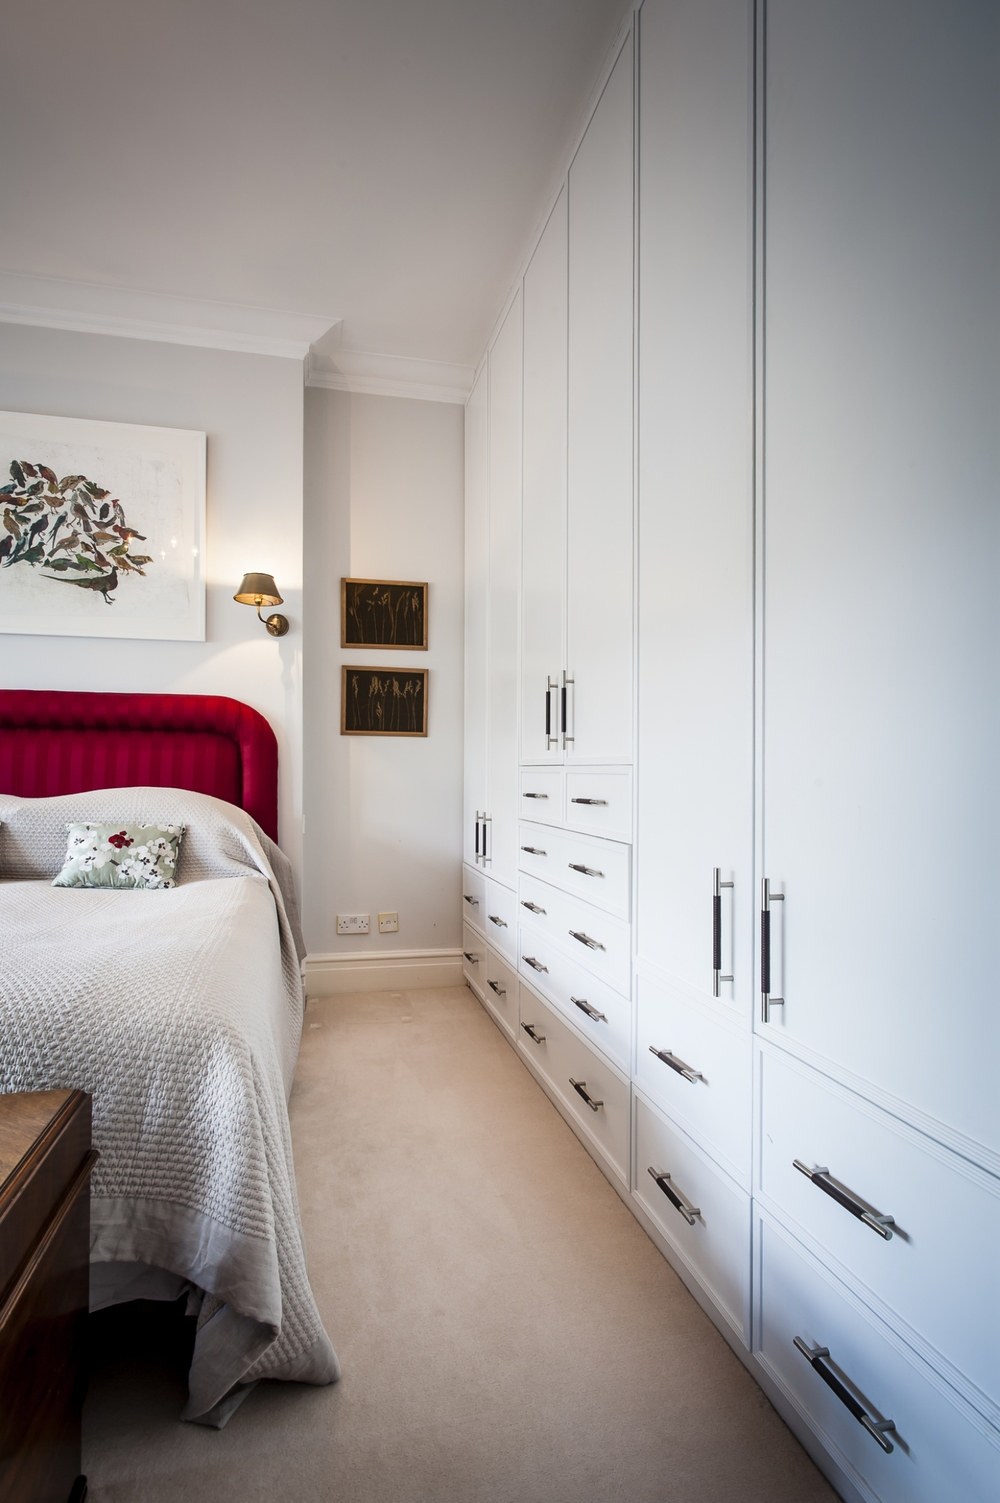 Golders Green Bedroom Renovation by Smartstyle Interiors 3.jpg